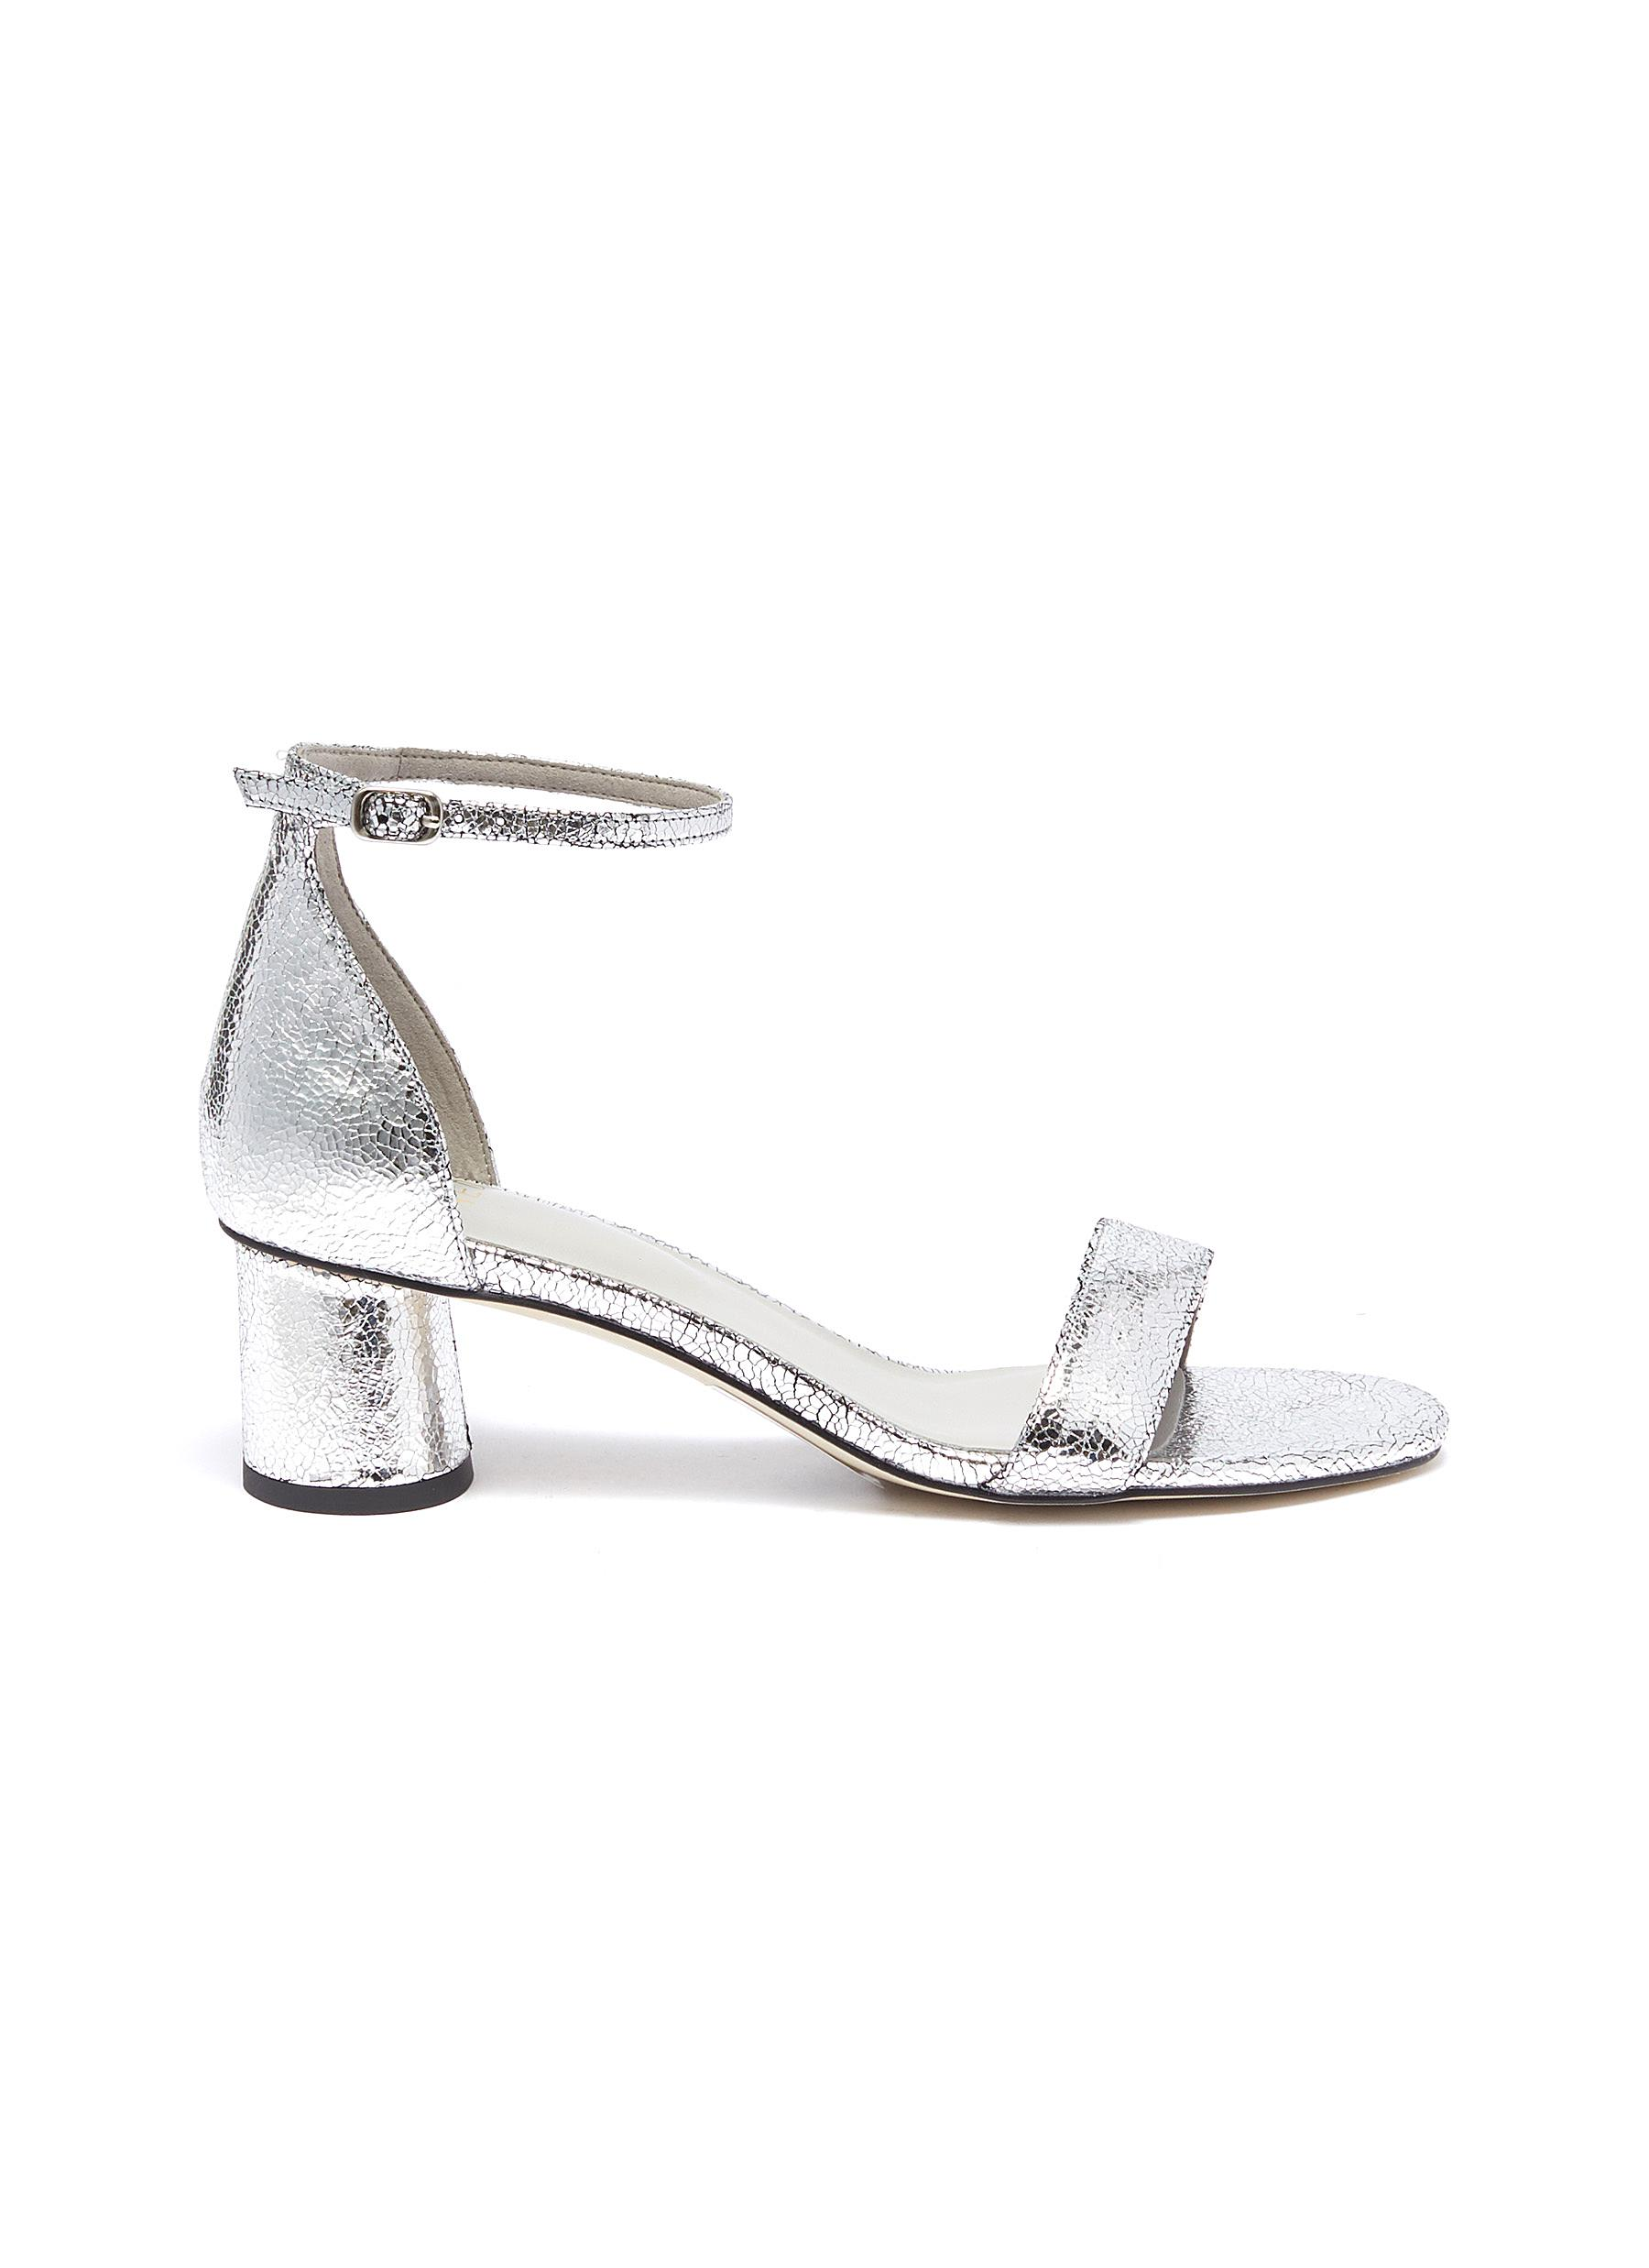 Alvin Ankle strap metallic leather sandals by Pedder Red